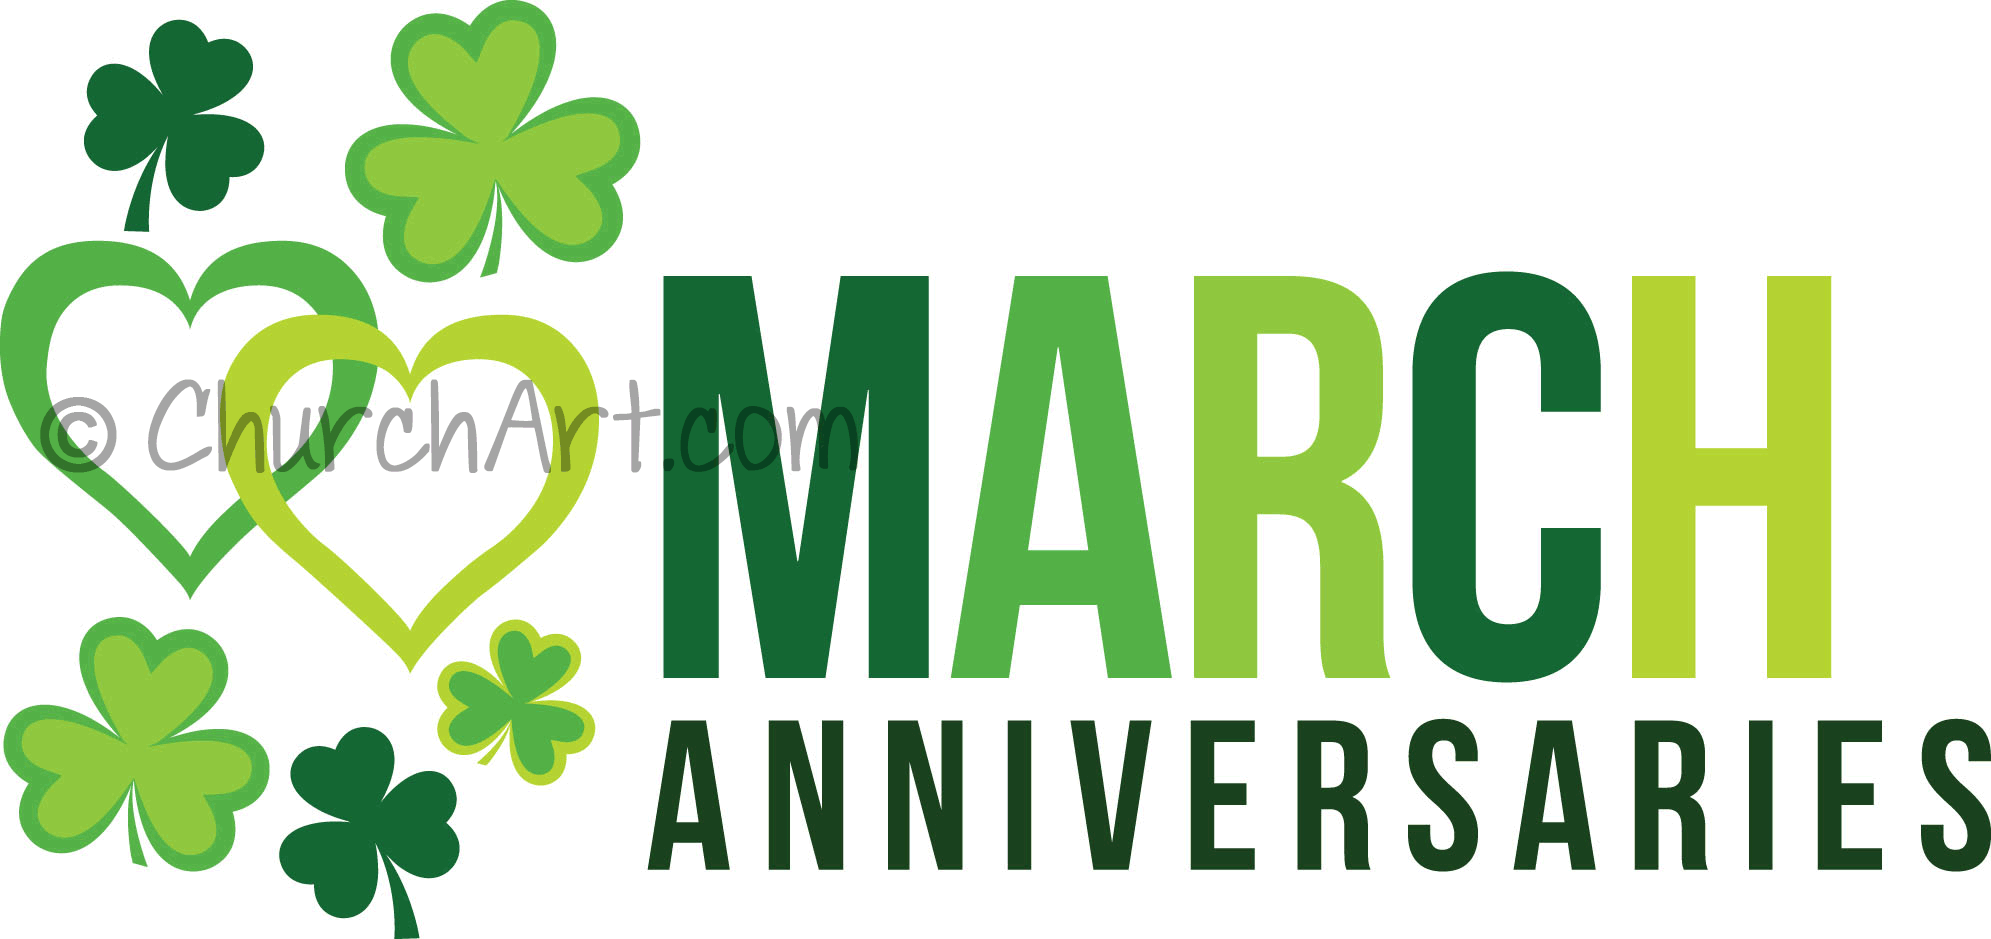 Clip-art image to celebrate March anniversaries in your church newsletter or church bulletin